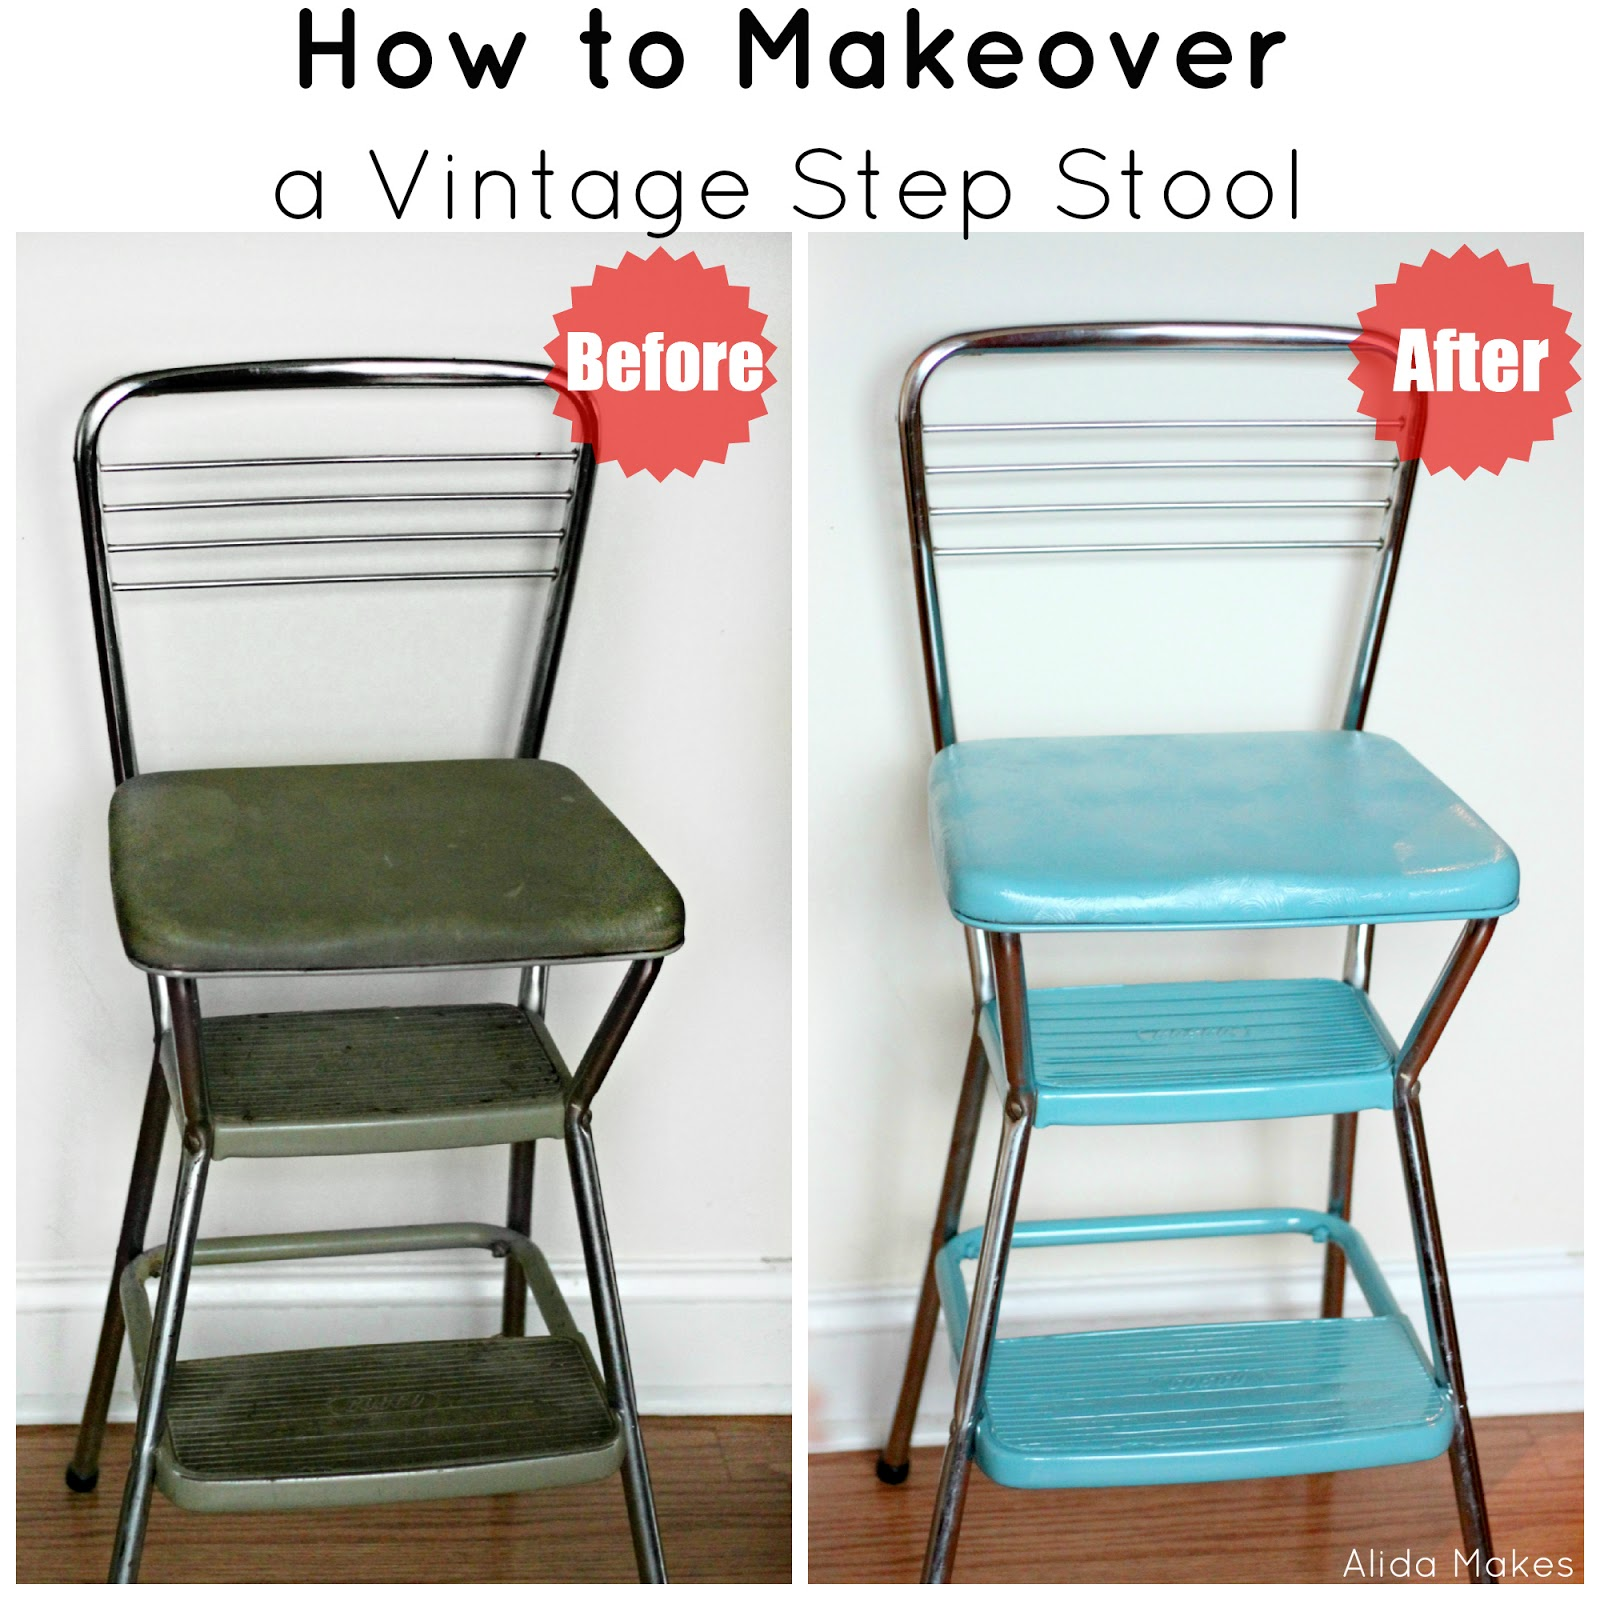 vintage cosco step stool chair walmart table chairs makeover photo prop alida makes